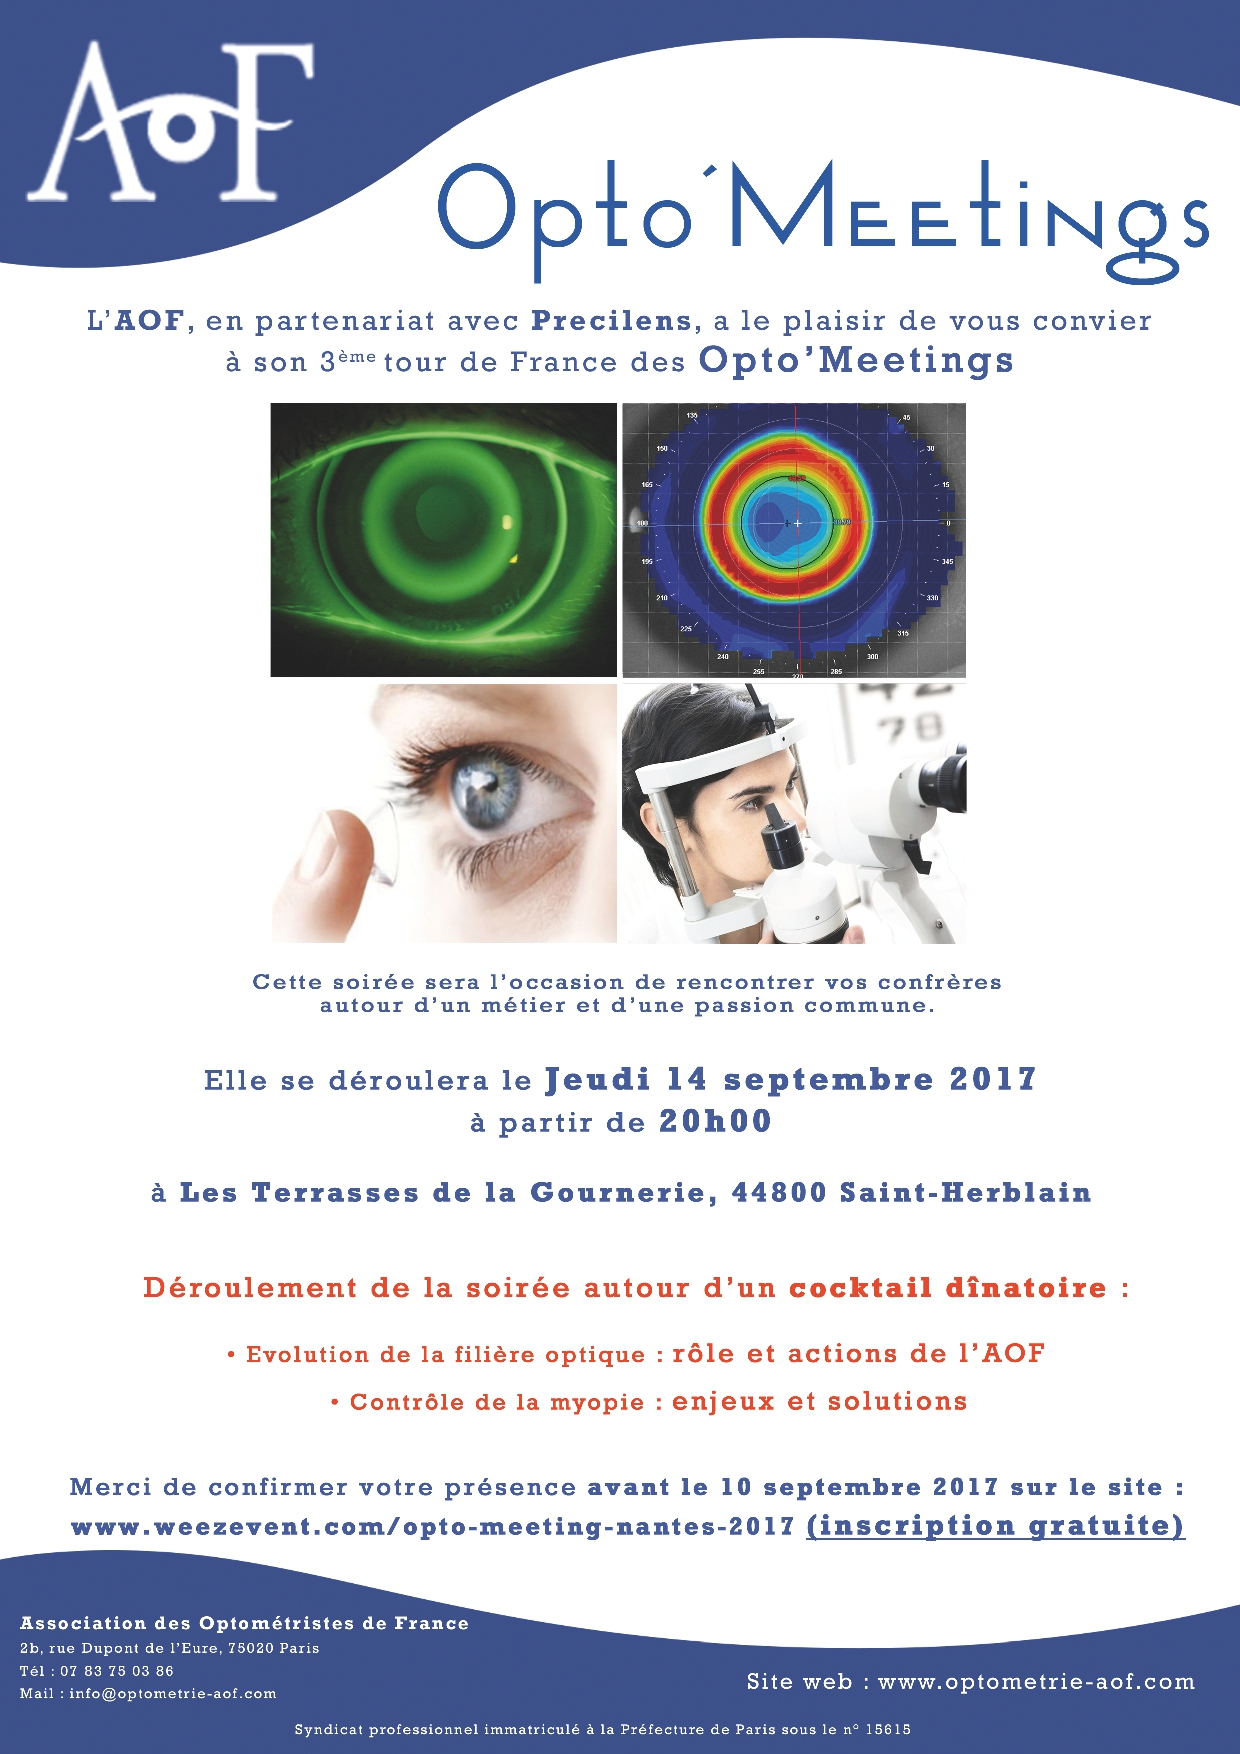 modele optomeetings ST HERBLAIN 1